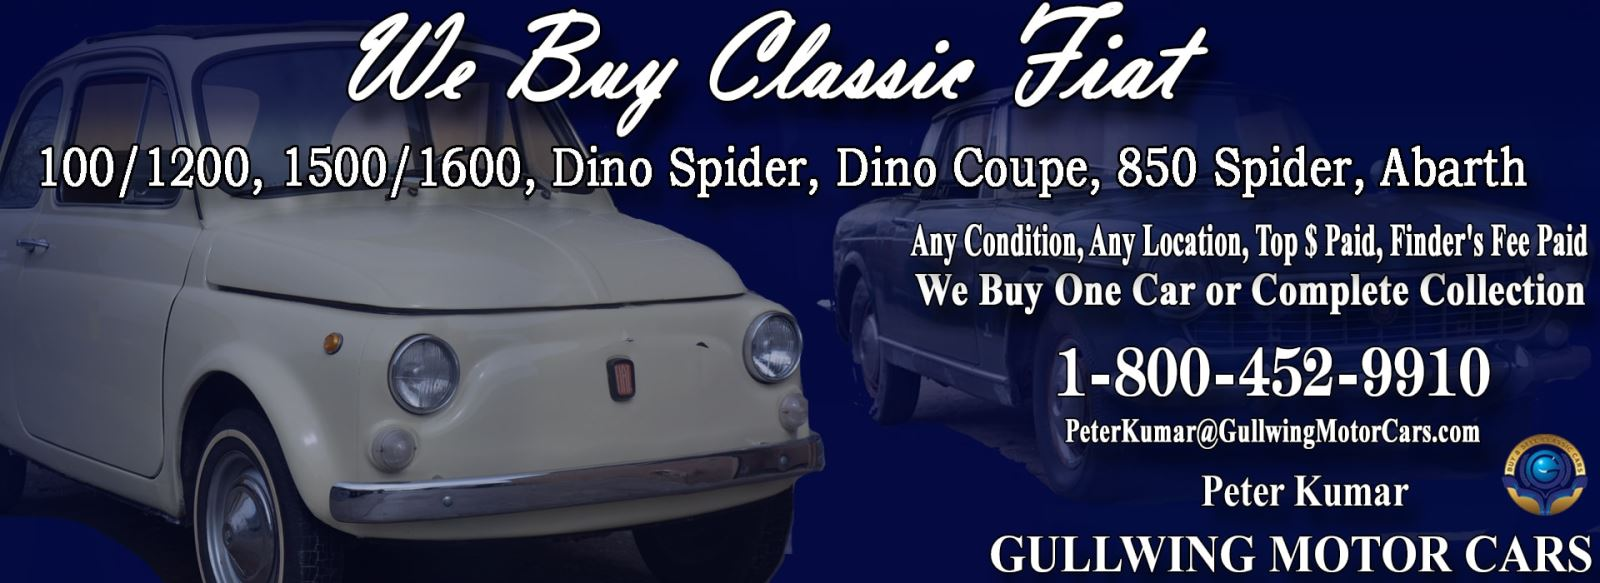 Classic Fiat for sale, we buy vintage Fiat. Call Peter Kumar. Gullwing Motor